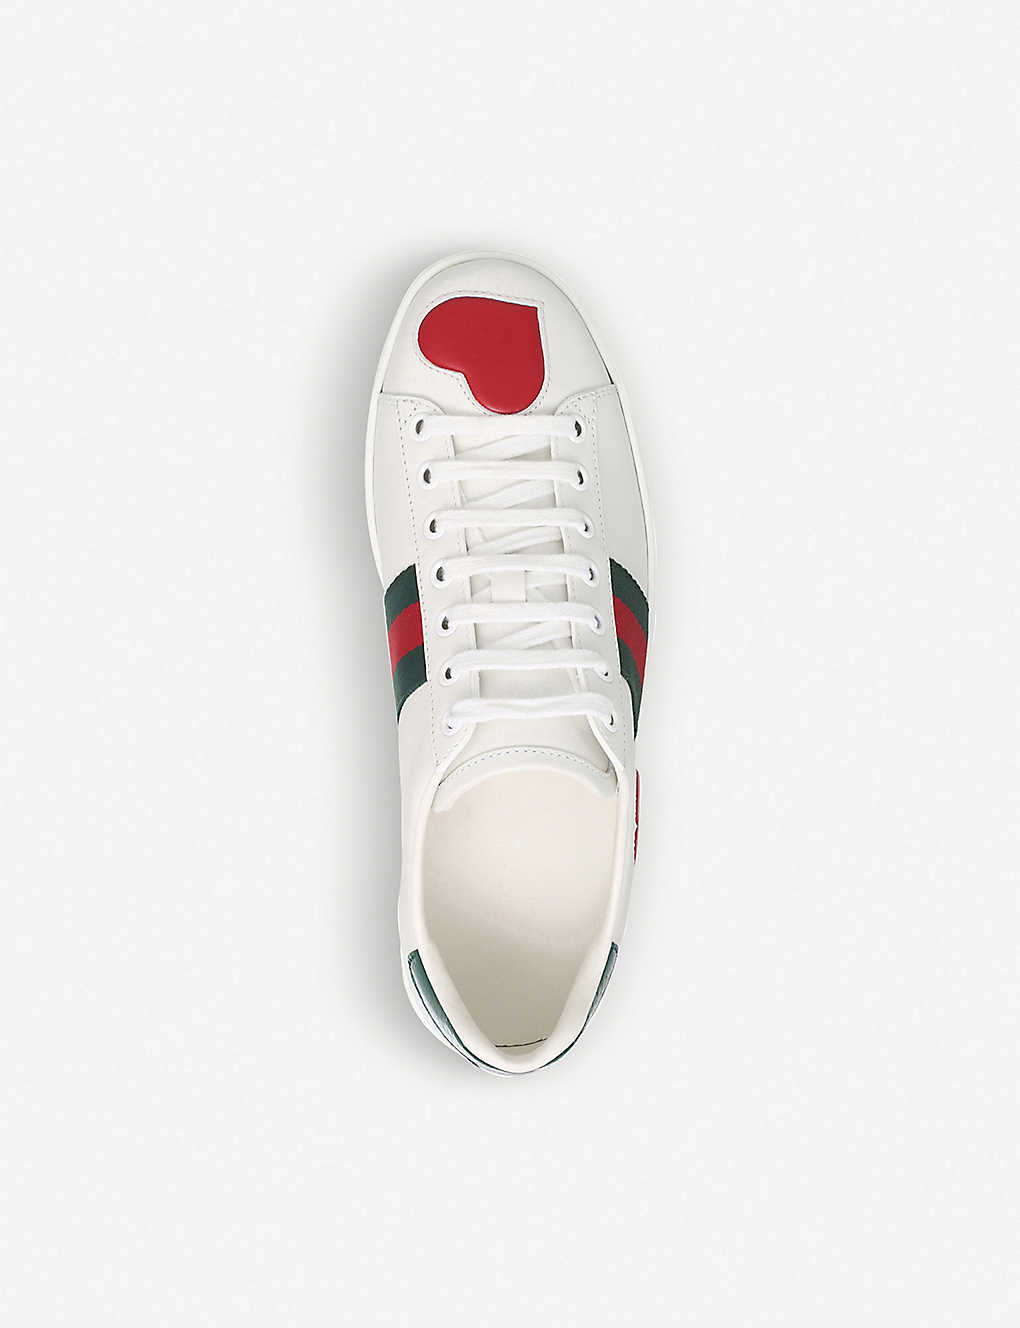 3531692d46e ... New Ace heart-detail leather trainers - Whitered ...